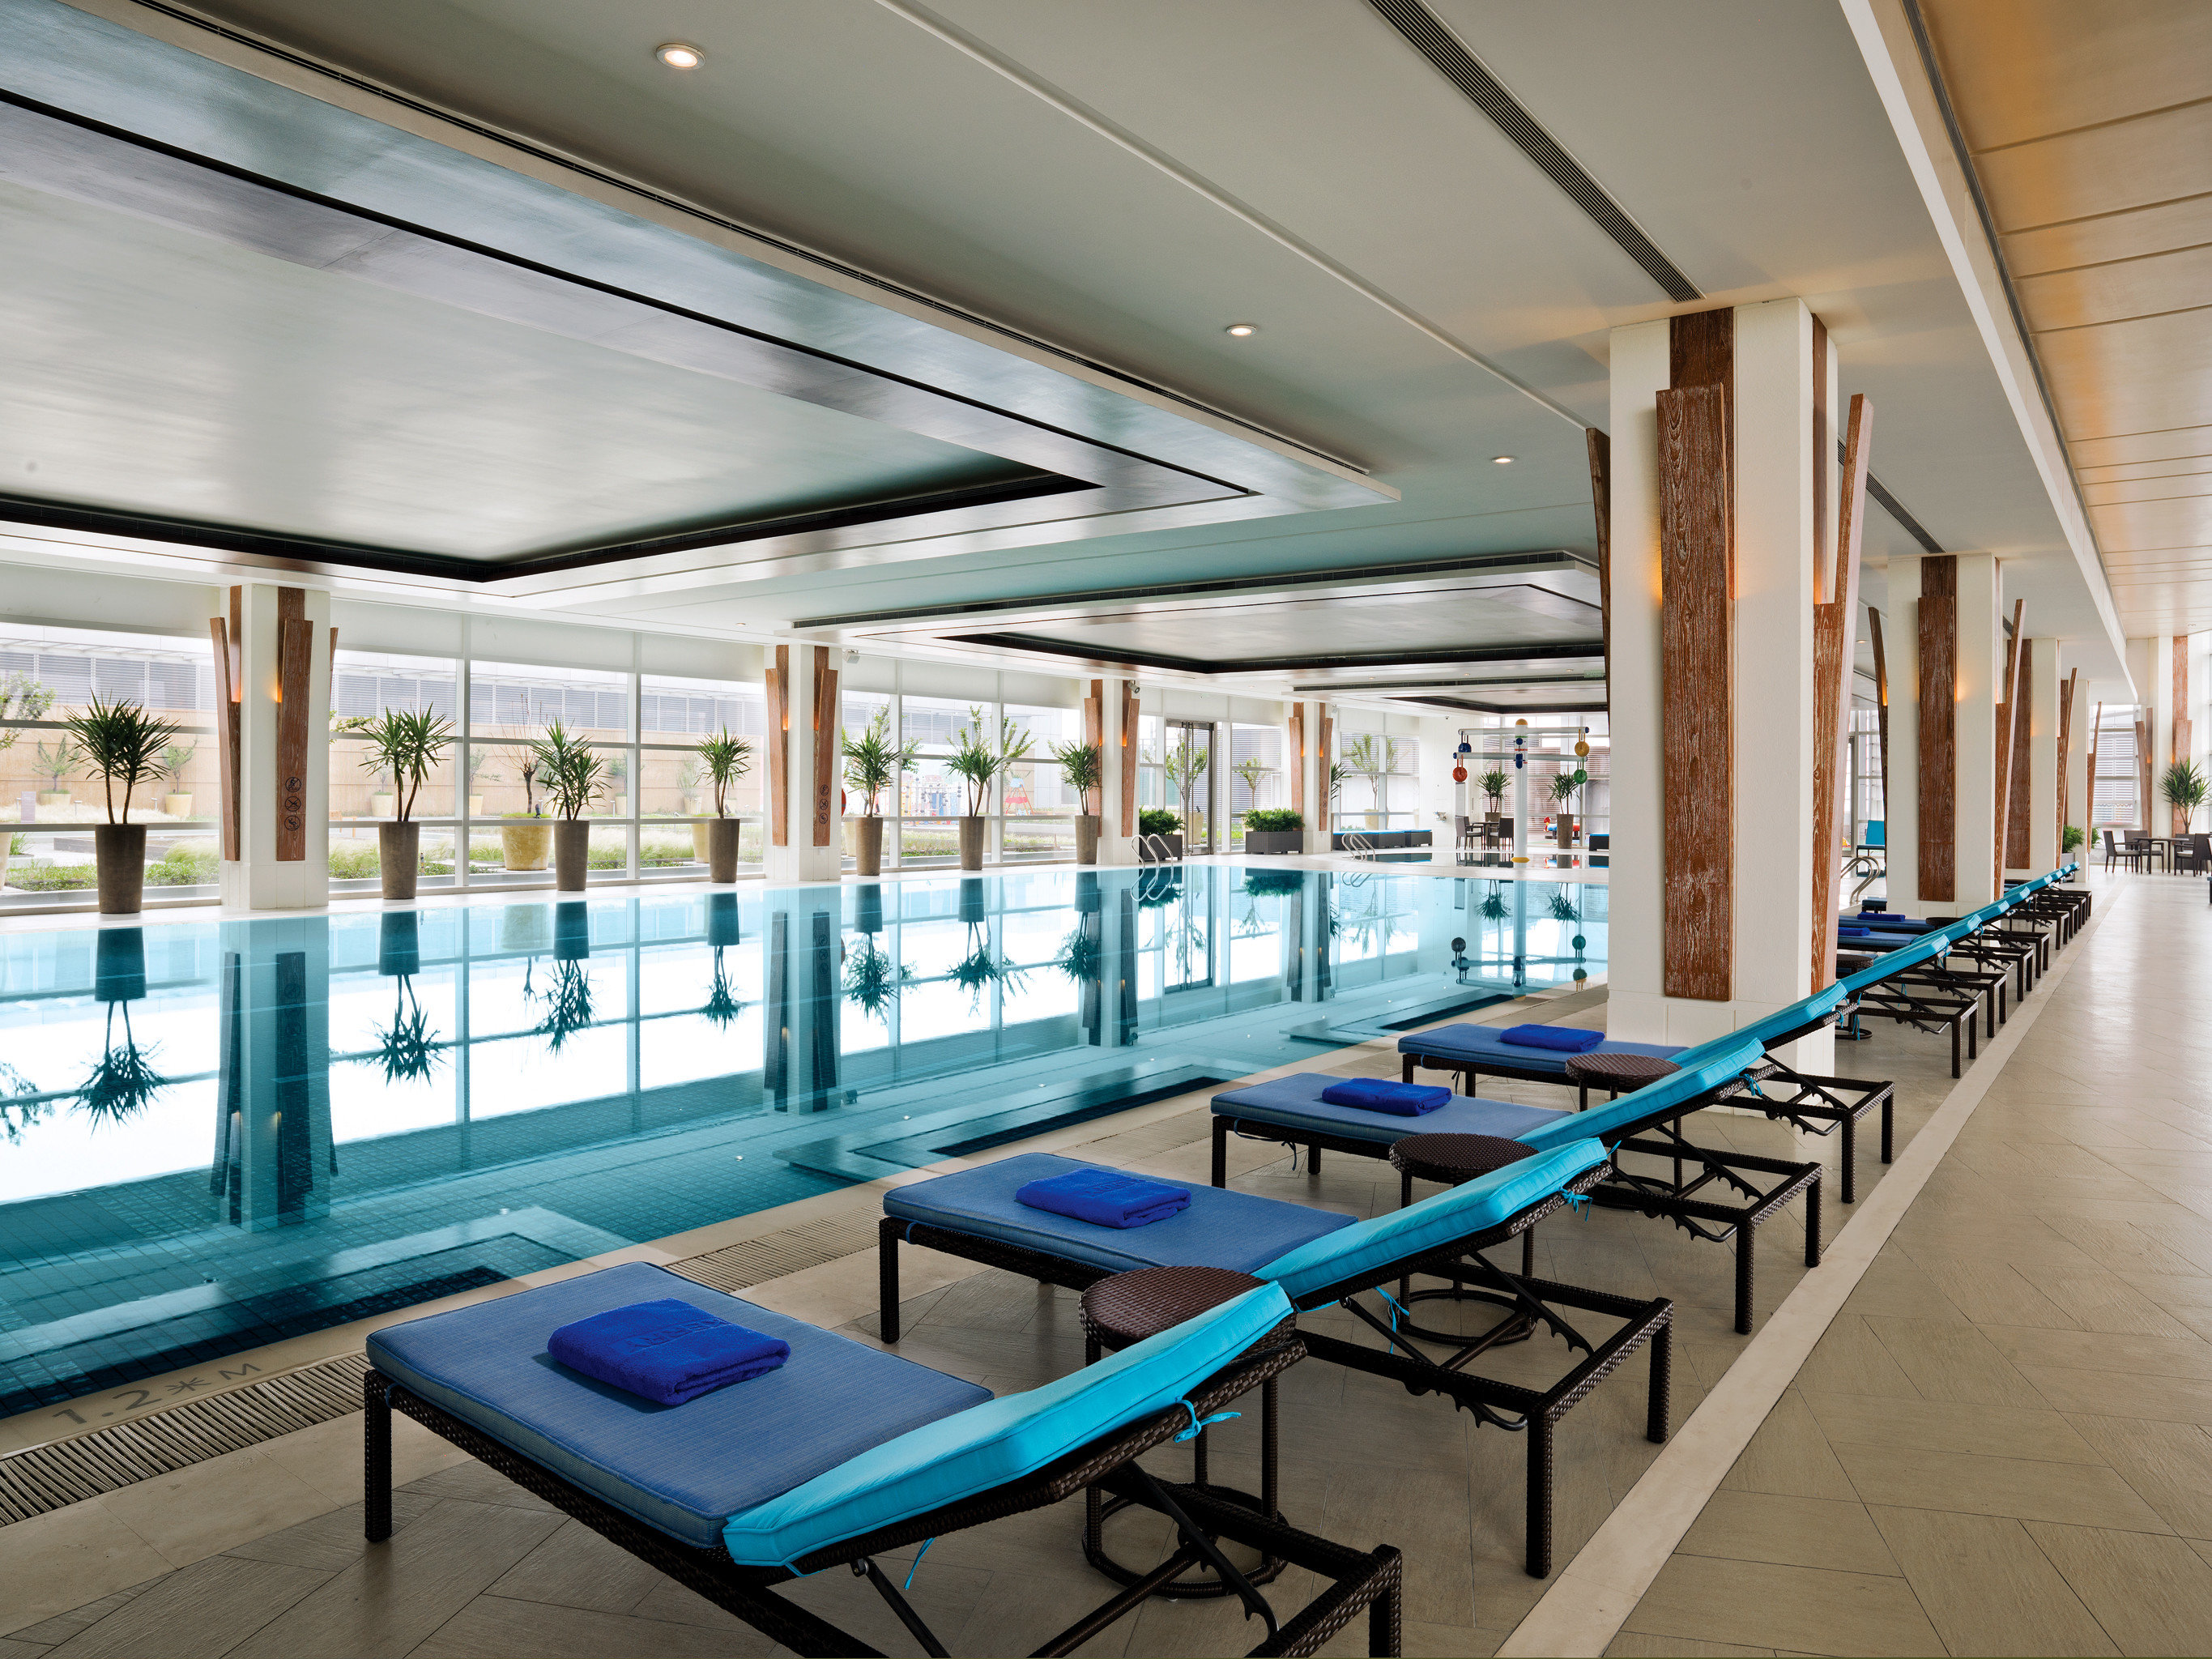 Lounge Luxury Modern Pool leisure centre swimming pool headquarters convention center condominium Lobby blue lined